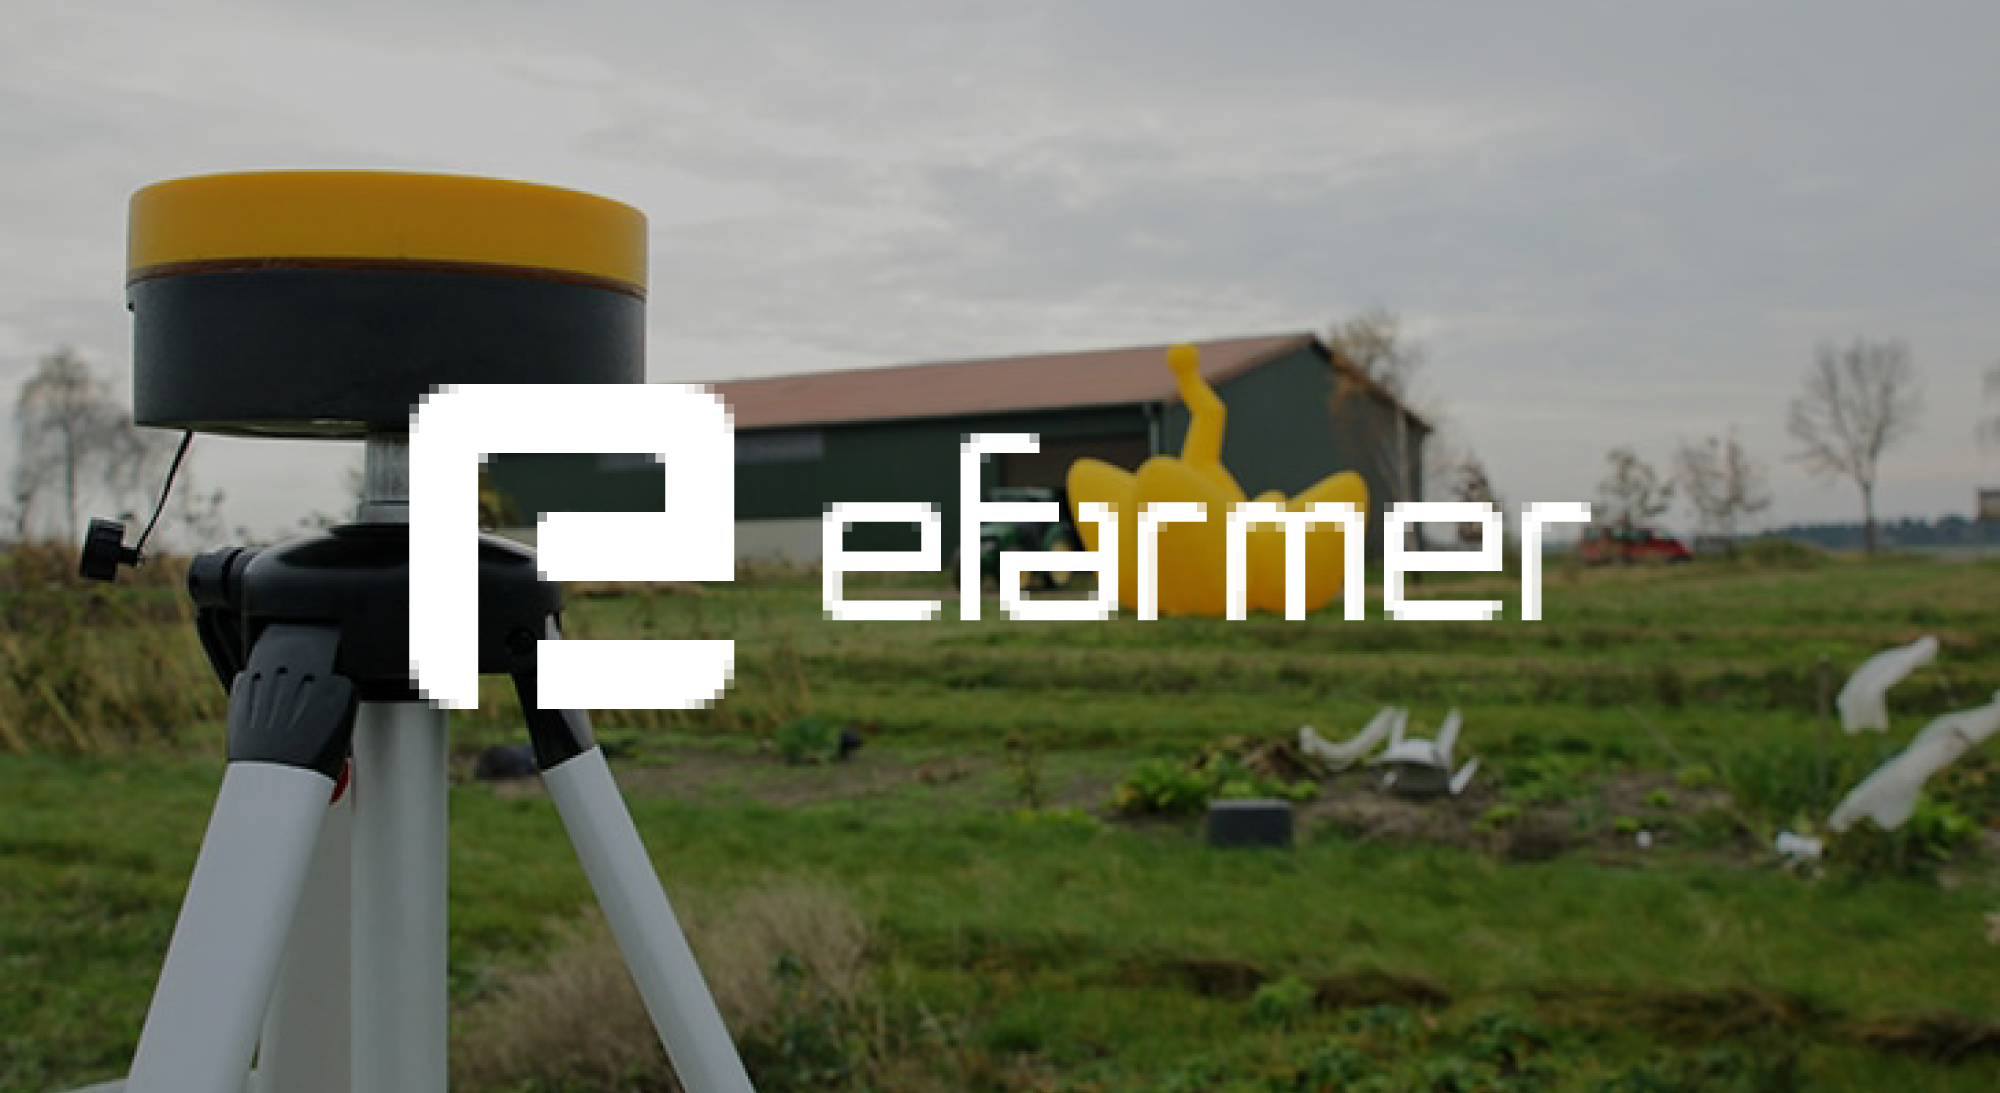 efarmer is one of the participants of the ScaleUpNation Food program, which focuses on upstream Agri&Food scale-ups